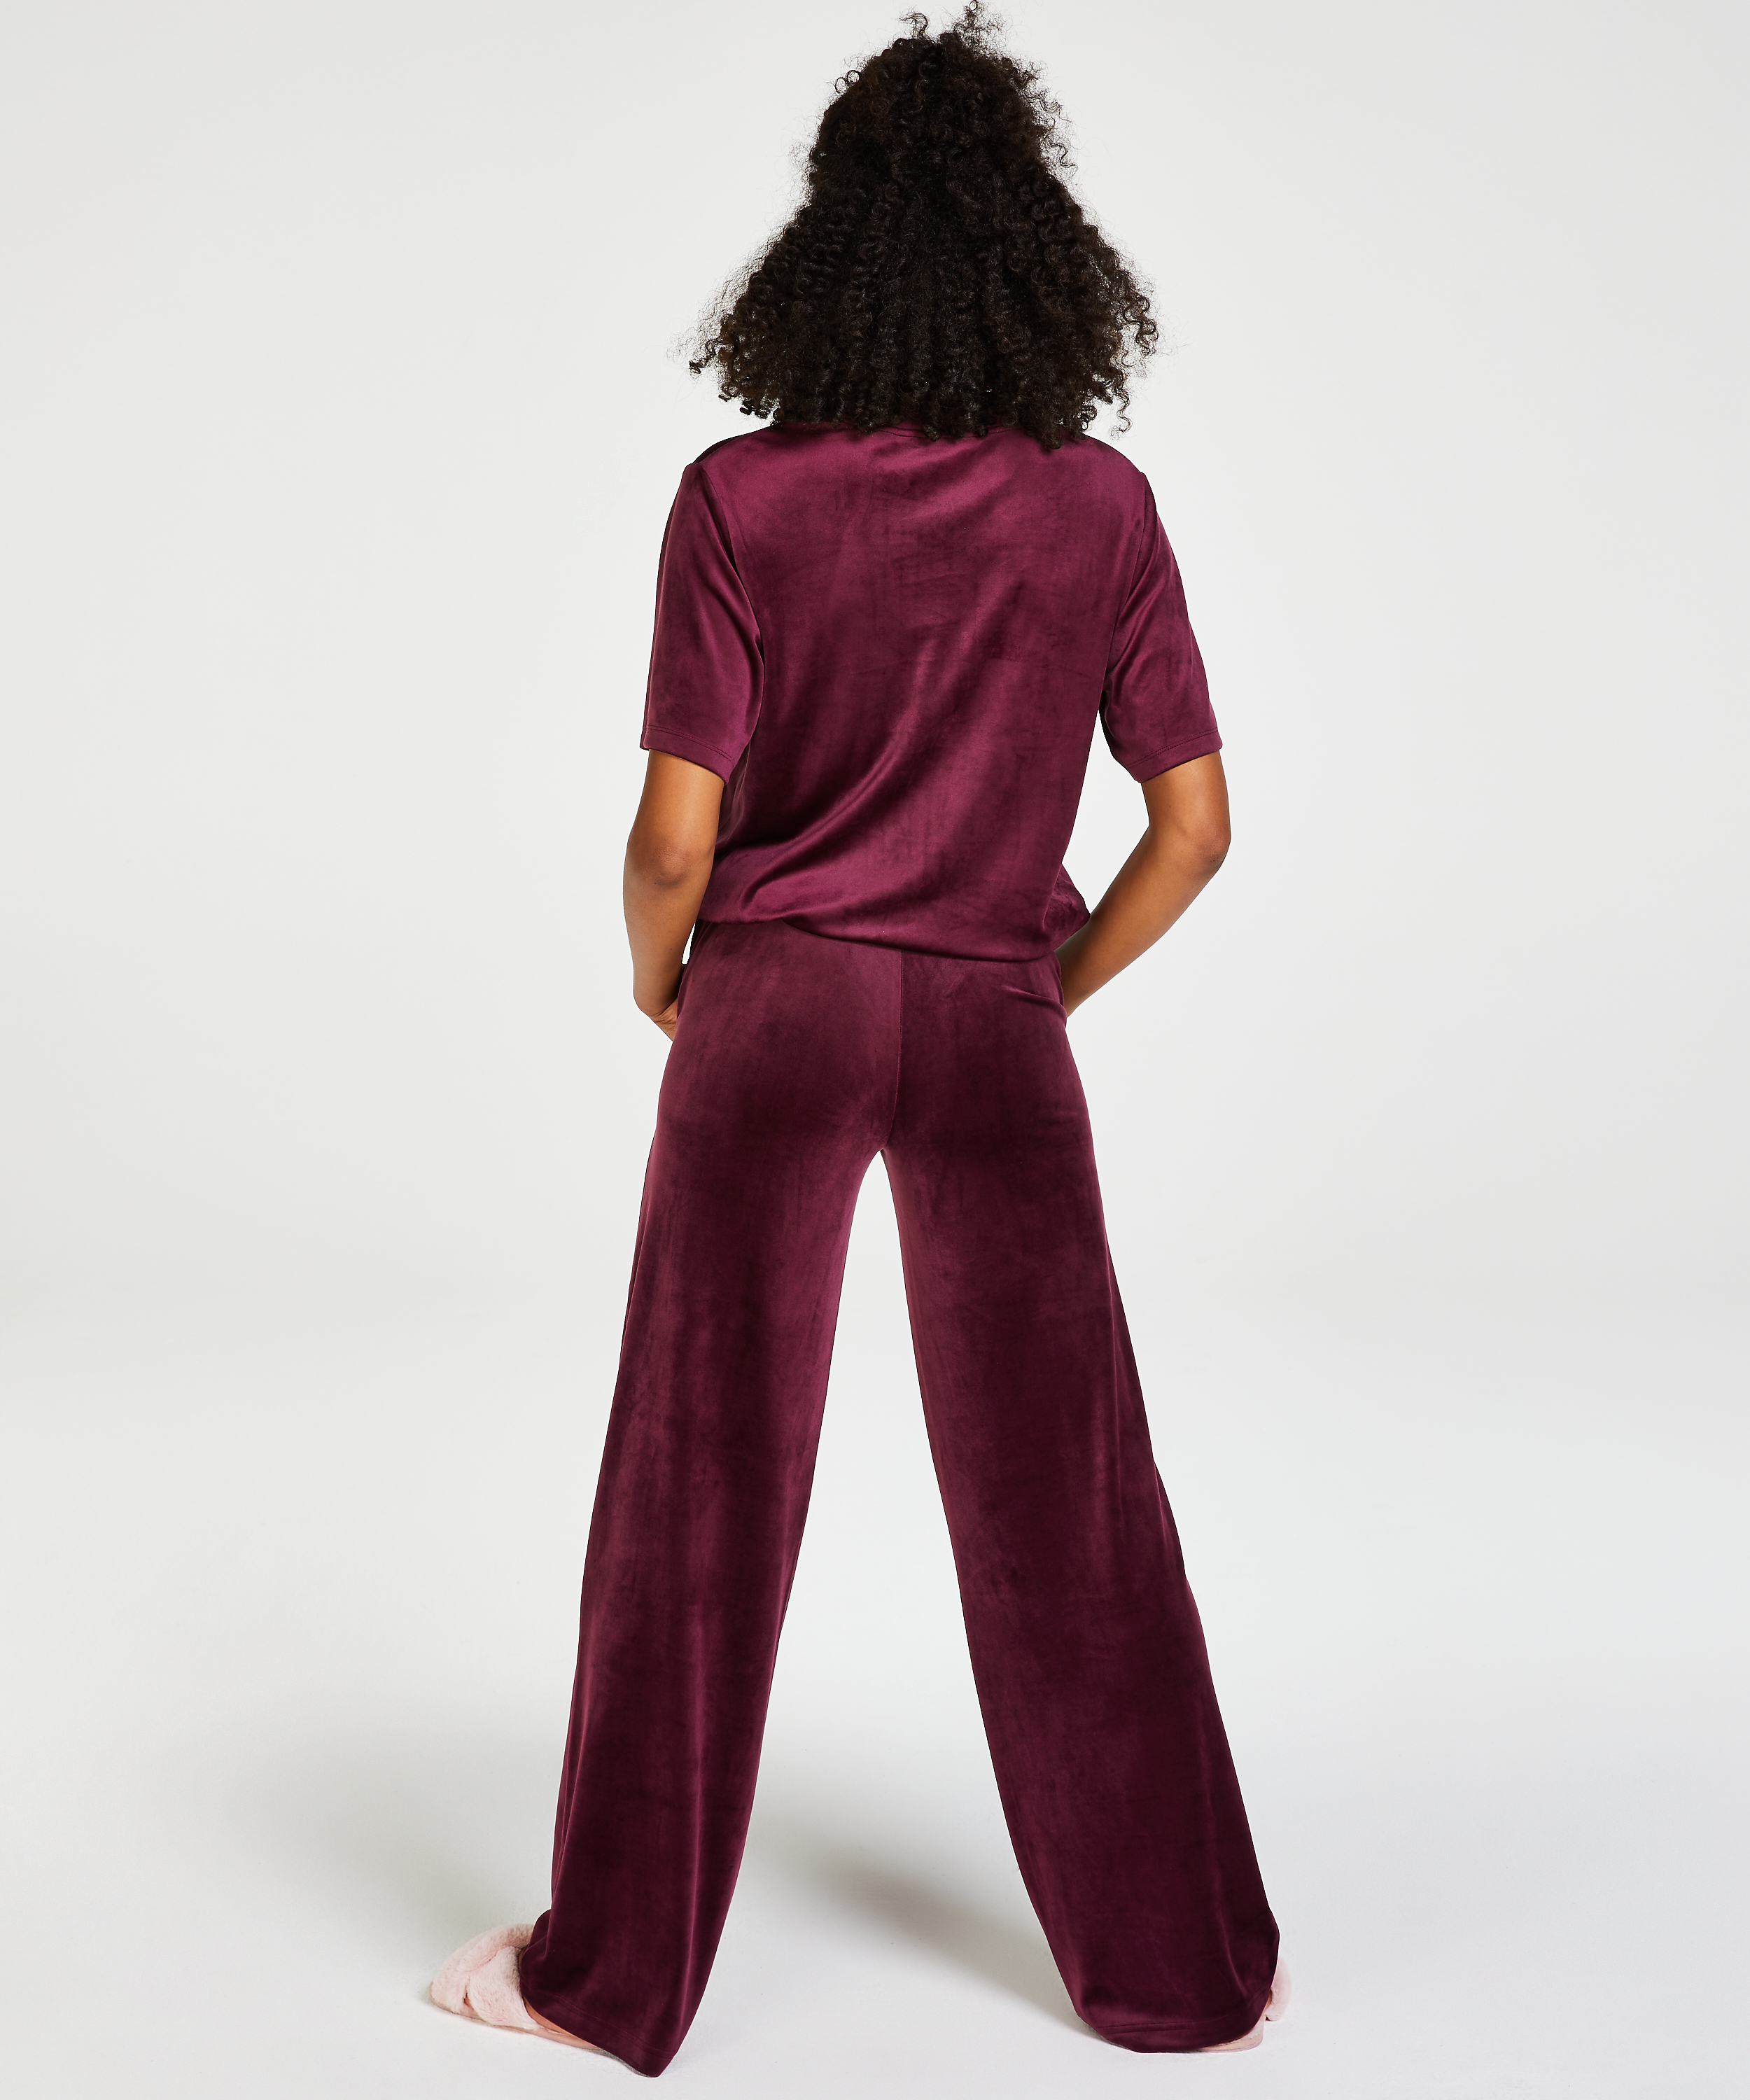 Tall Pyjamasbyxor i velour for 299.00SEK Byxor & Shorts